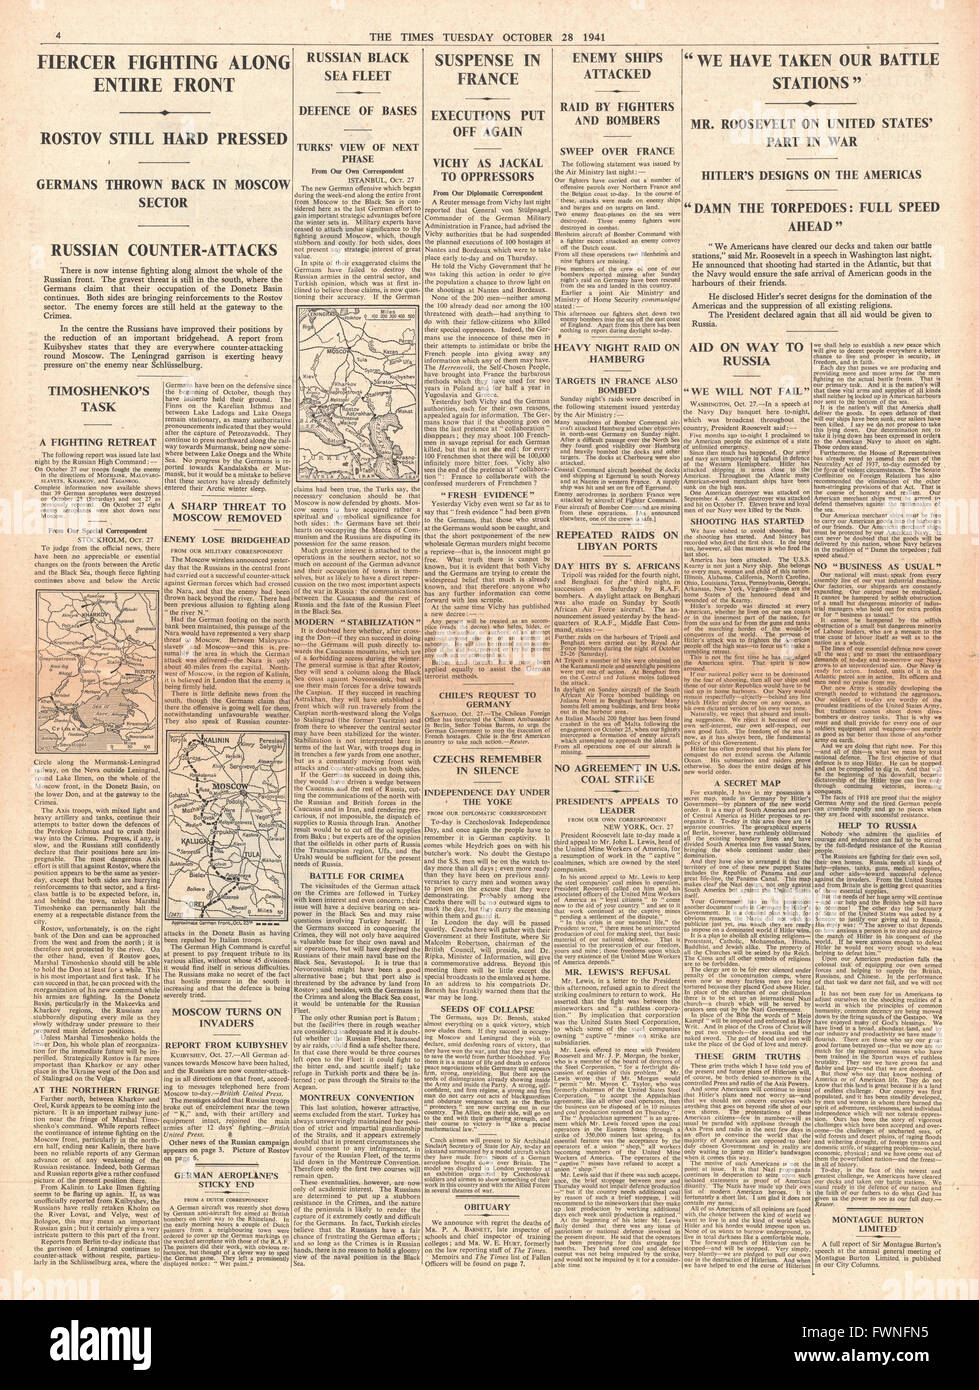 1941 page 4 The Times Fierce Fighting along Eastern Front and Roosevelt readies the United States for War saying Stock Photo